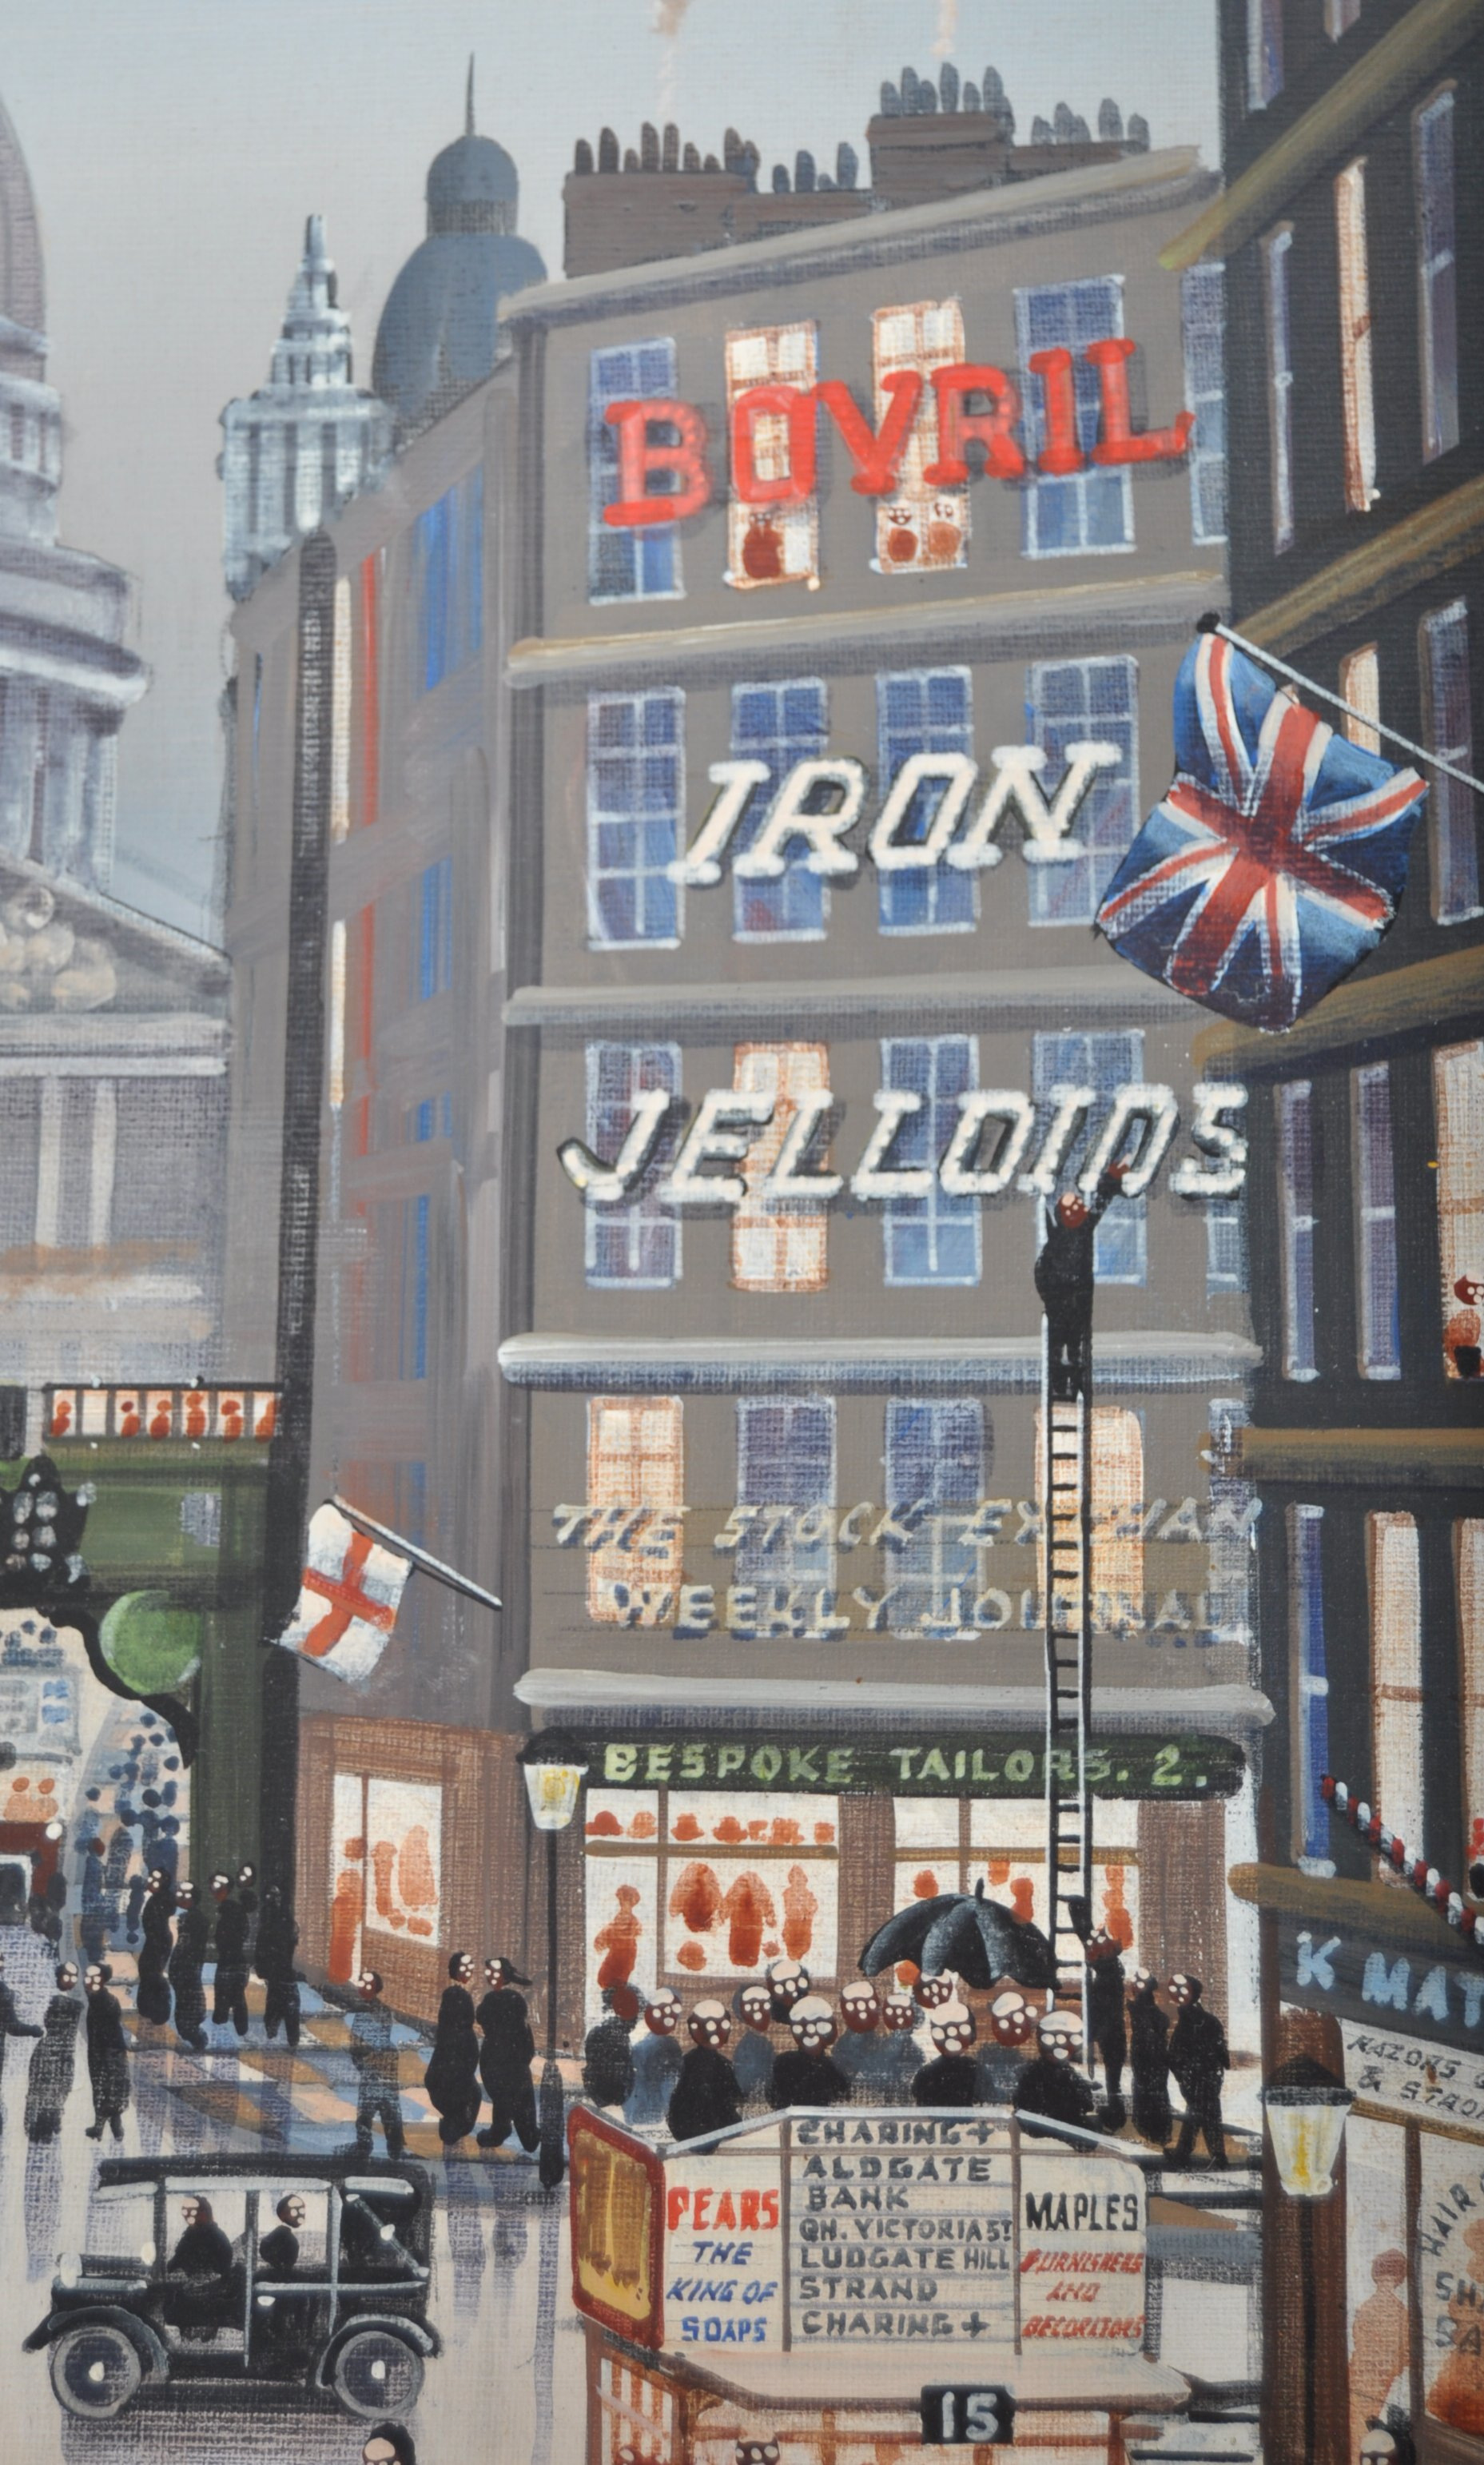 ALFRED JONES OIL ON BOARD PAINTING DEPICTING A LONDON STREET - Image 3 of 6